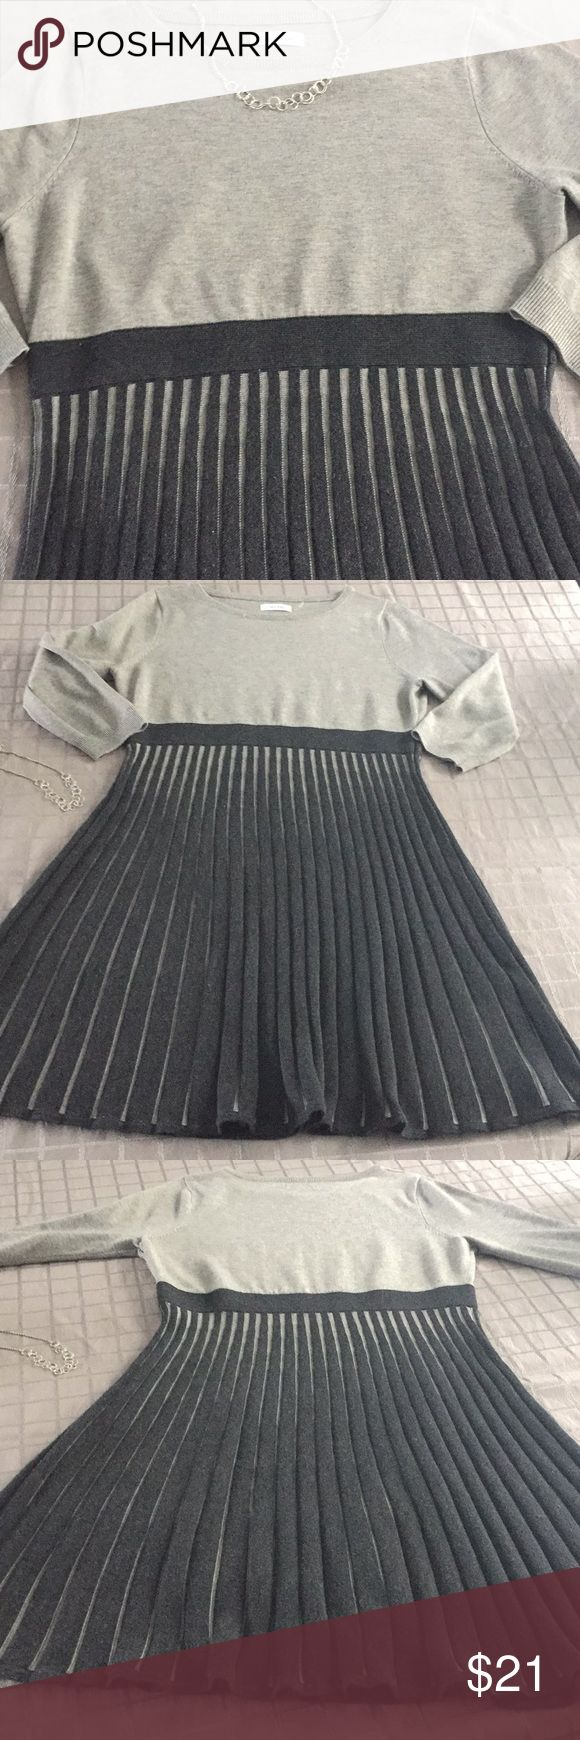 Calvin Klein light gray/dark gray sweater dress Excellent used condition ladies large Calvin Klein sweater dress- light gray bodice with dark gray skirt with light gray between the pleats of the skirt, knee length Calvin Klein Dresses Midi